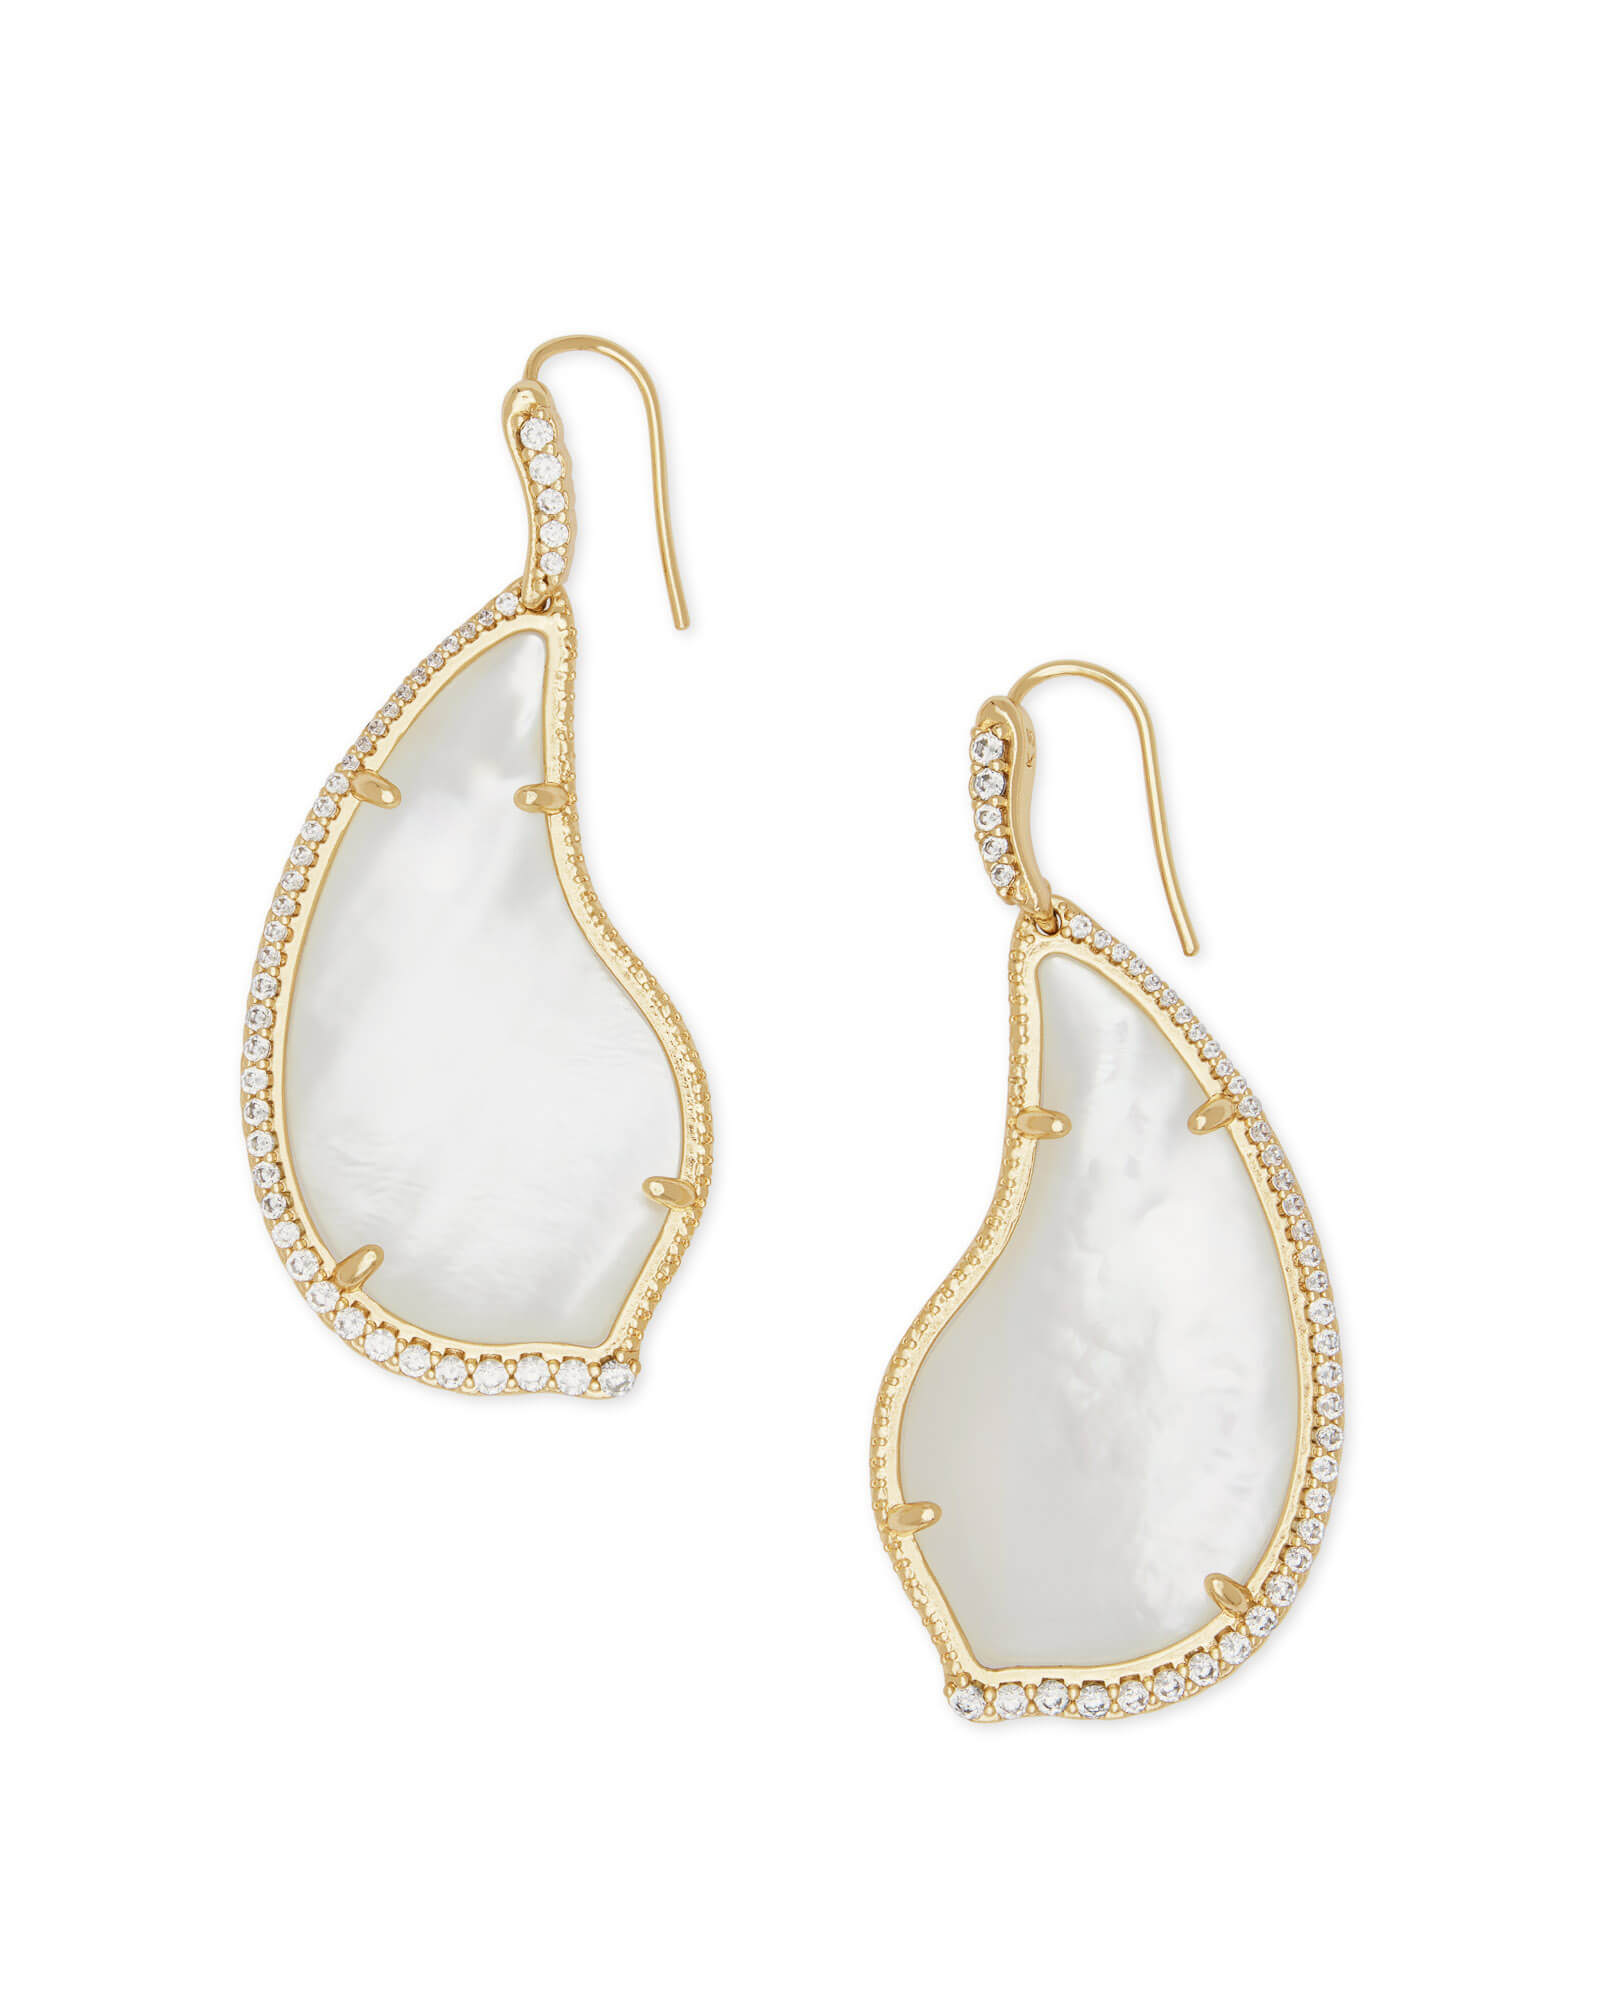 Tinley Gold Drop Earrings in Ivory Pearl